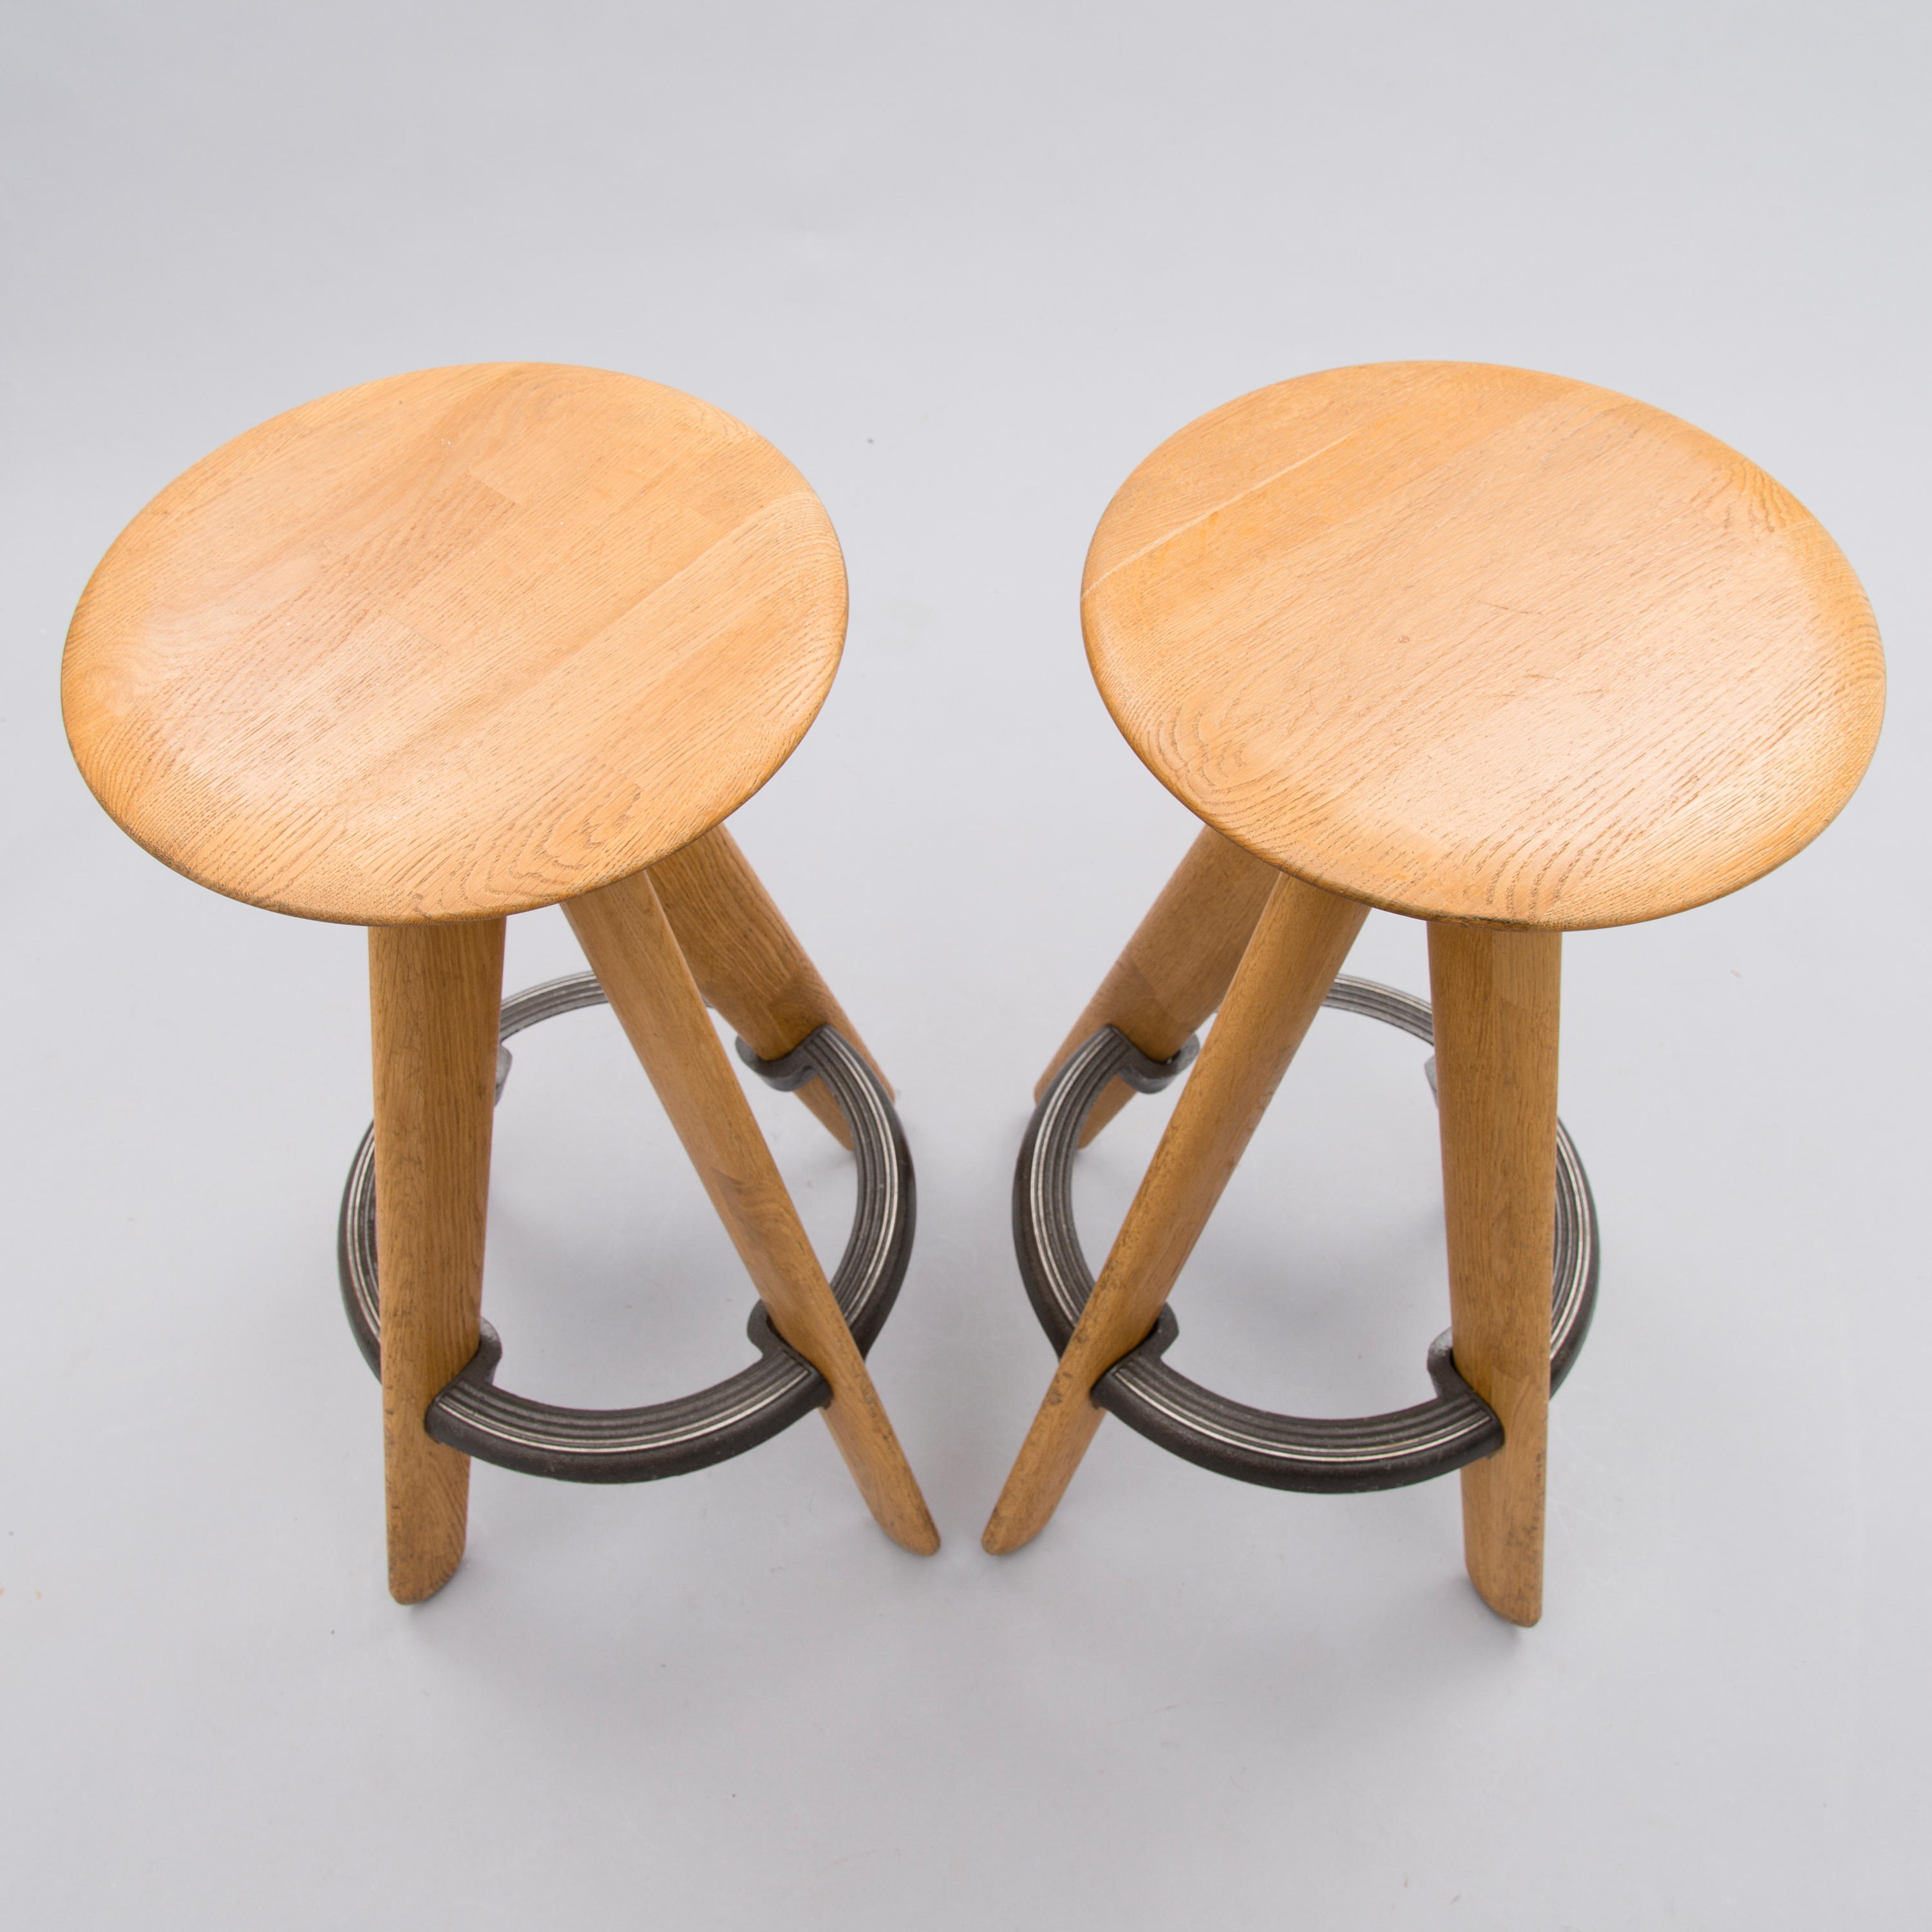 Outstanding Tom Dixon A Pair Of 21St Century Slab Bar Stools Bukowskis Gmtry Best Dining Table And Chair Ideas Images Gmtryco